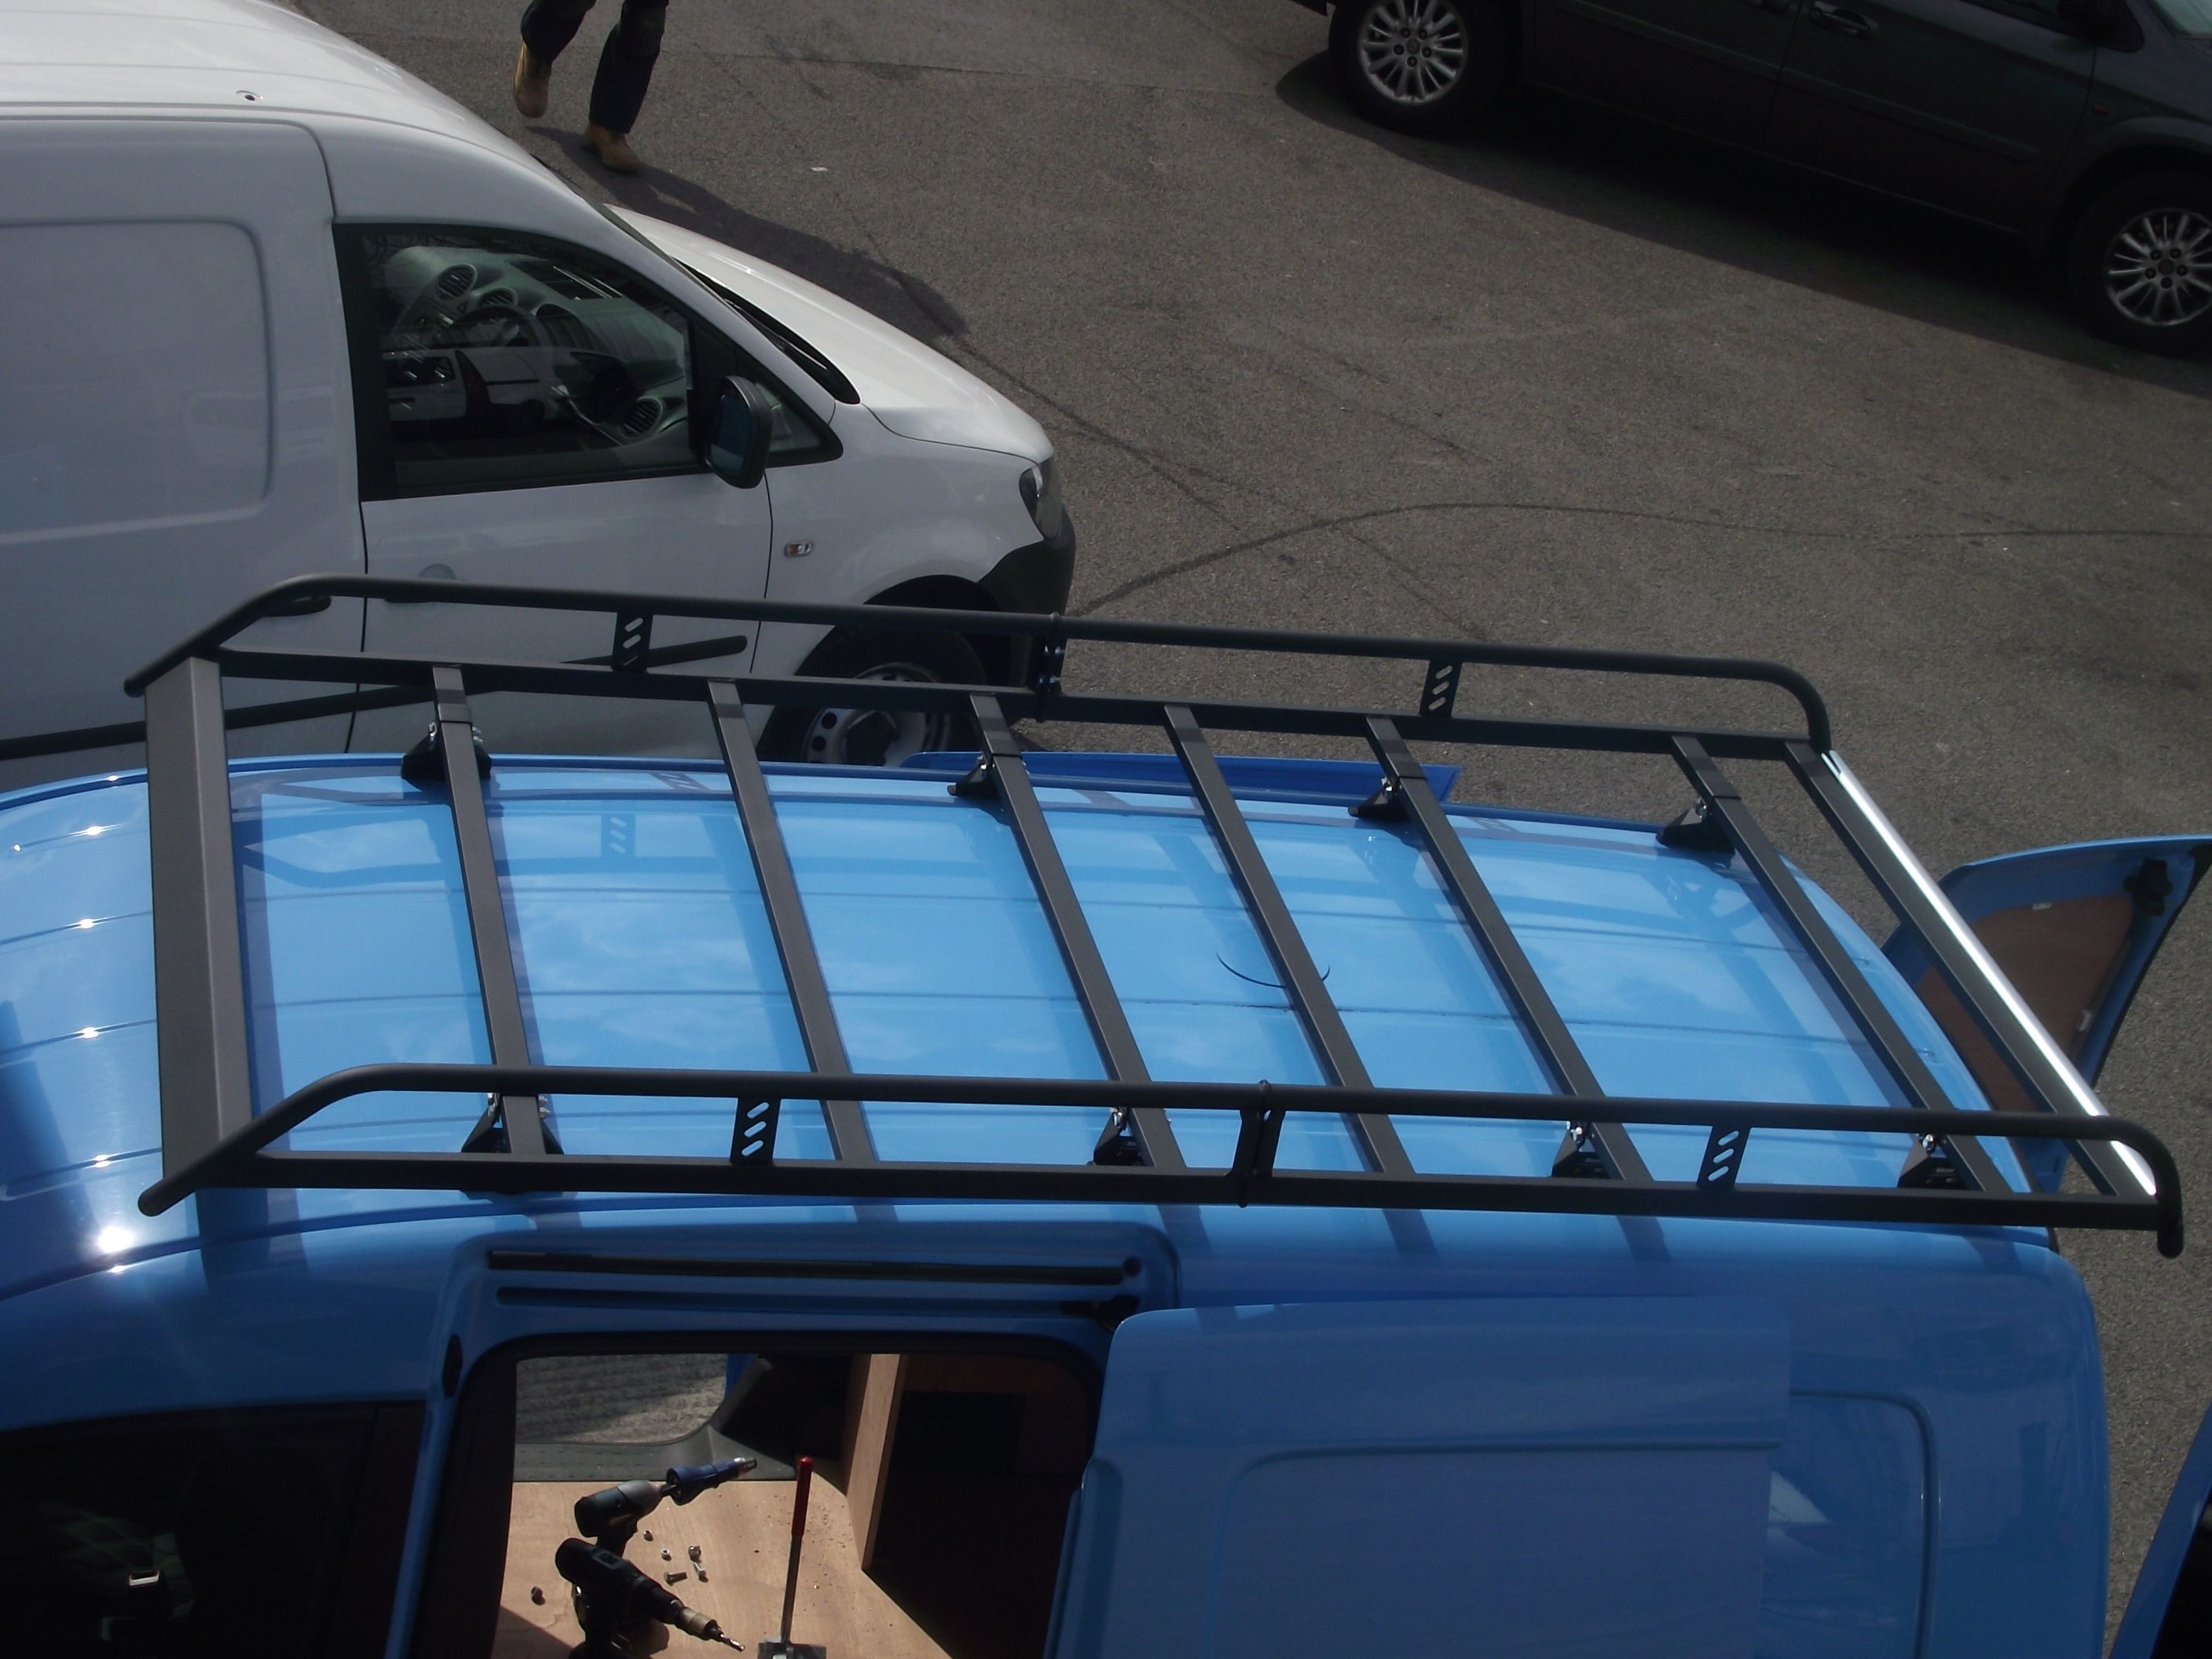 Modular Roof Rack Fitted To A Vw Caddy By Vehicle Accessories Limited Roof Architecture Modern Roofing Patio Roof